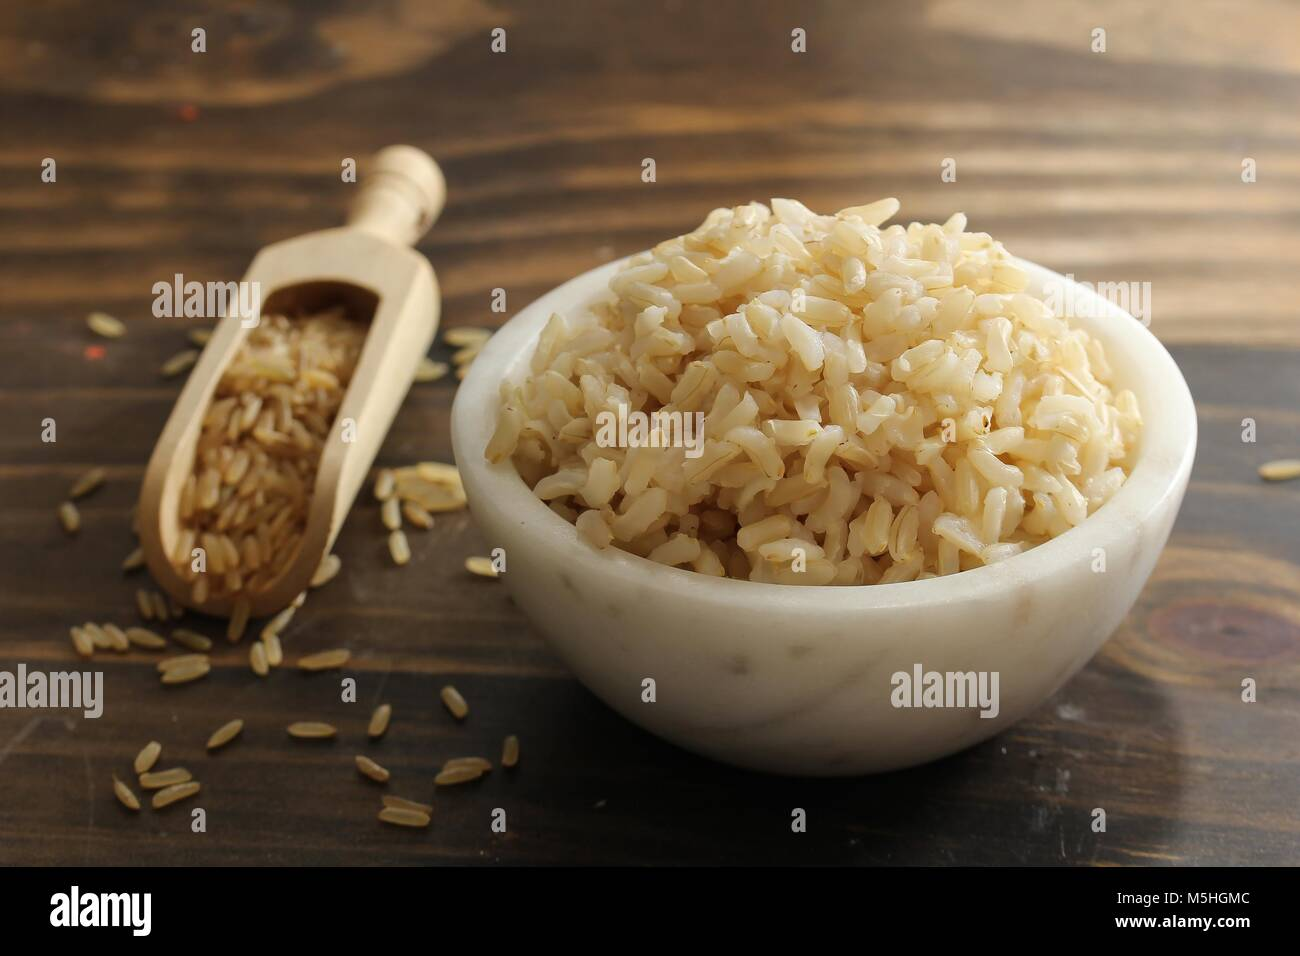 Cooked Whole grain brown rice served in a bowl, selective focus - Stock Image